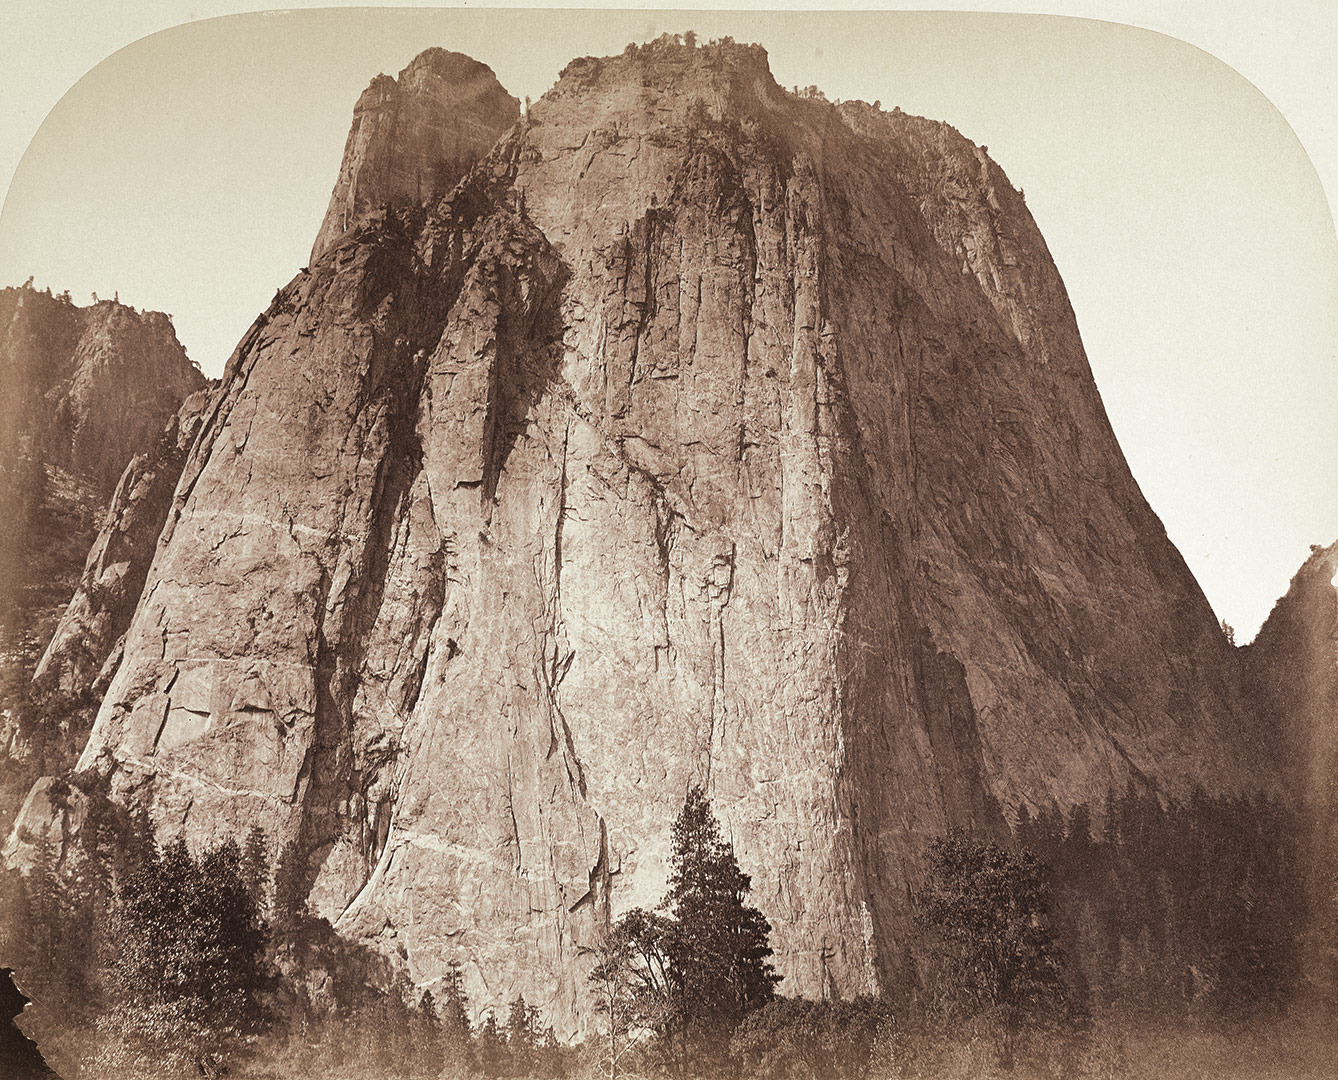 time-100-influential-photos-carleton-watkins-cathedral-rock-yosemite-5